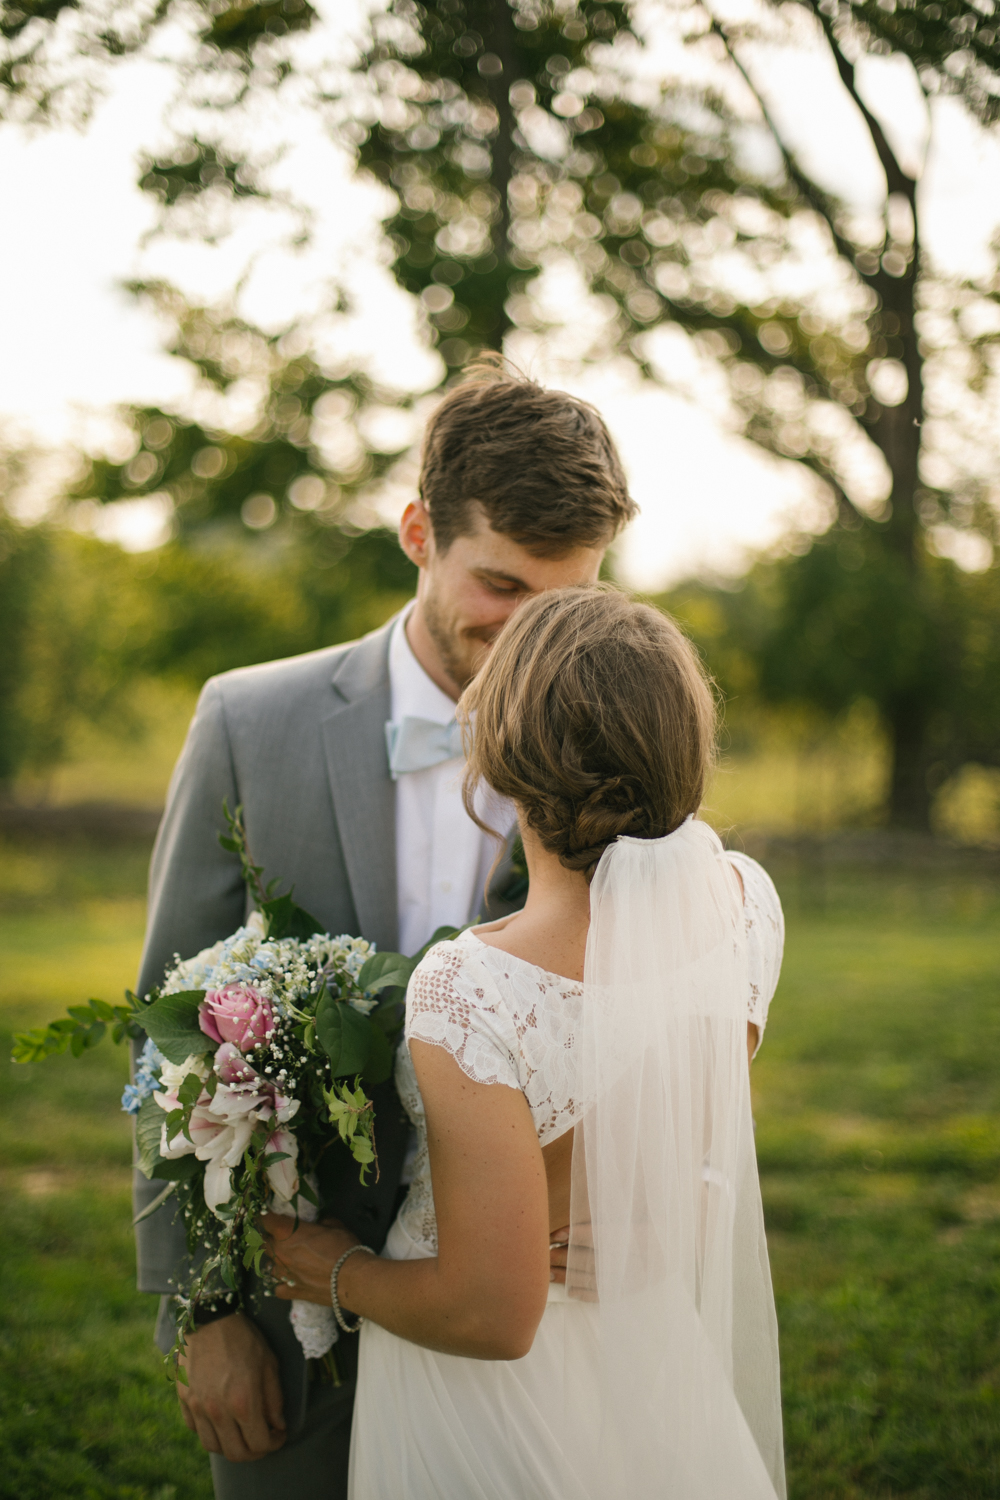 2019.06.01_CraskWedding_Starks-144.jpg